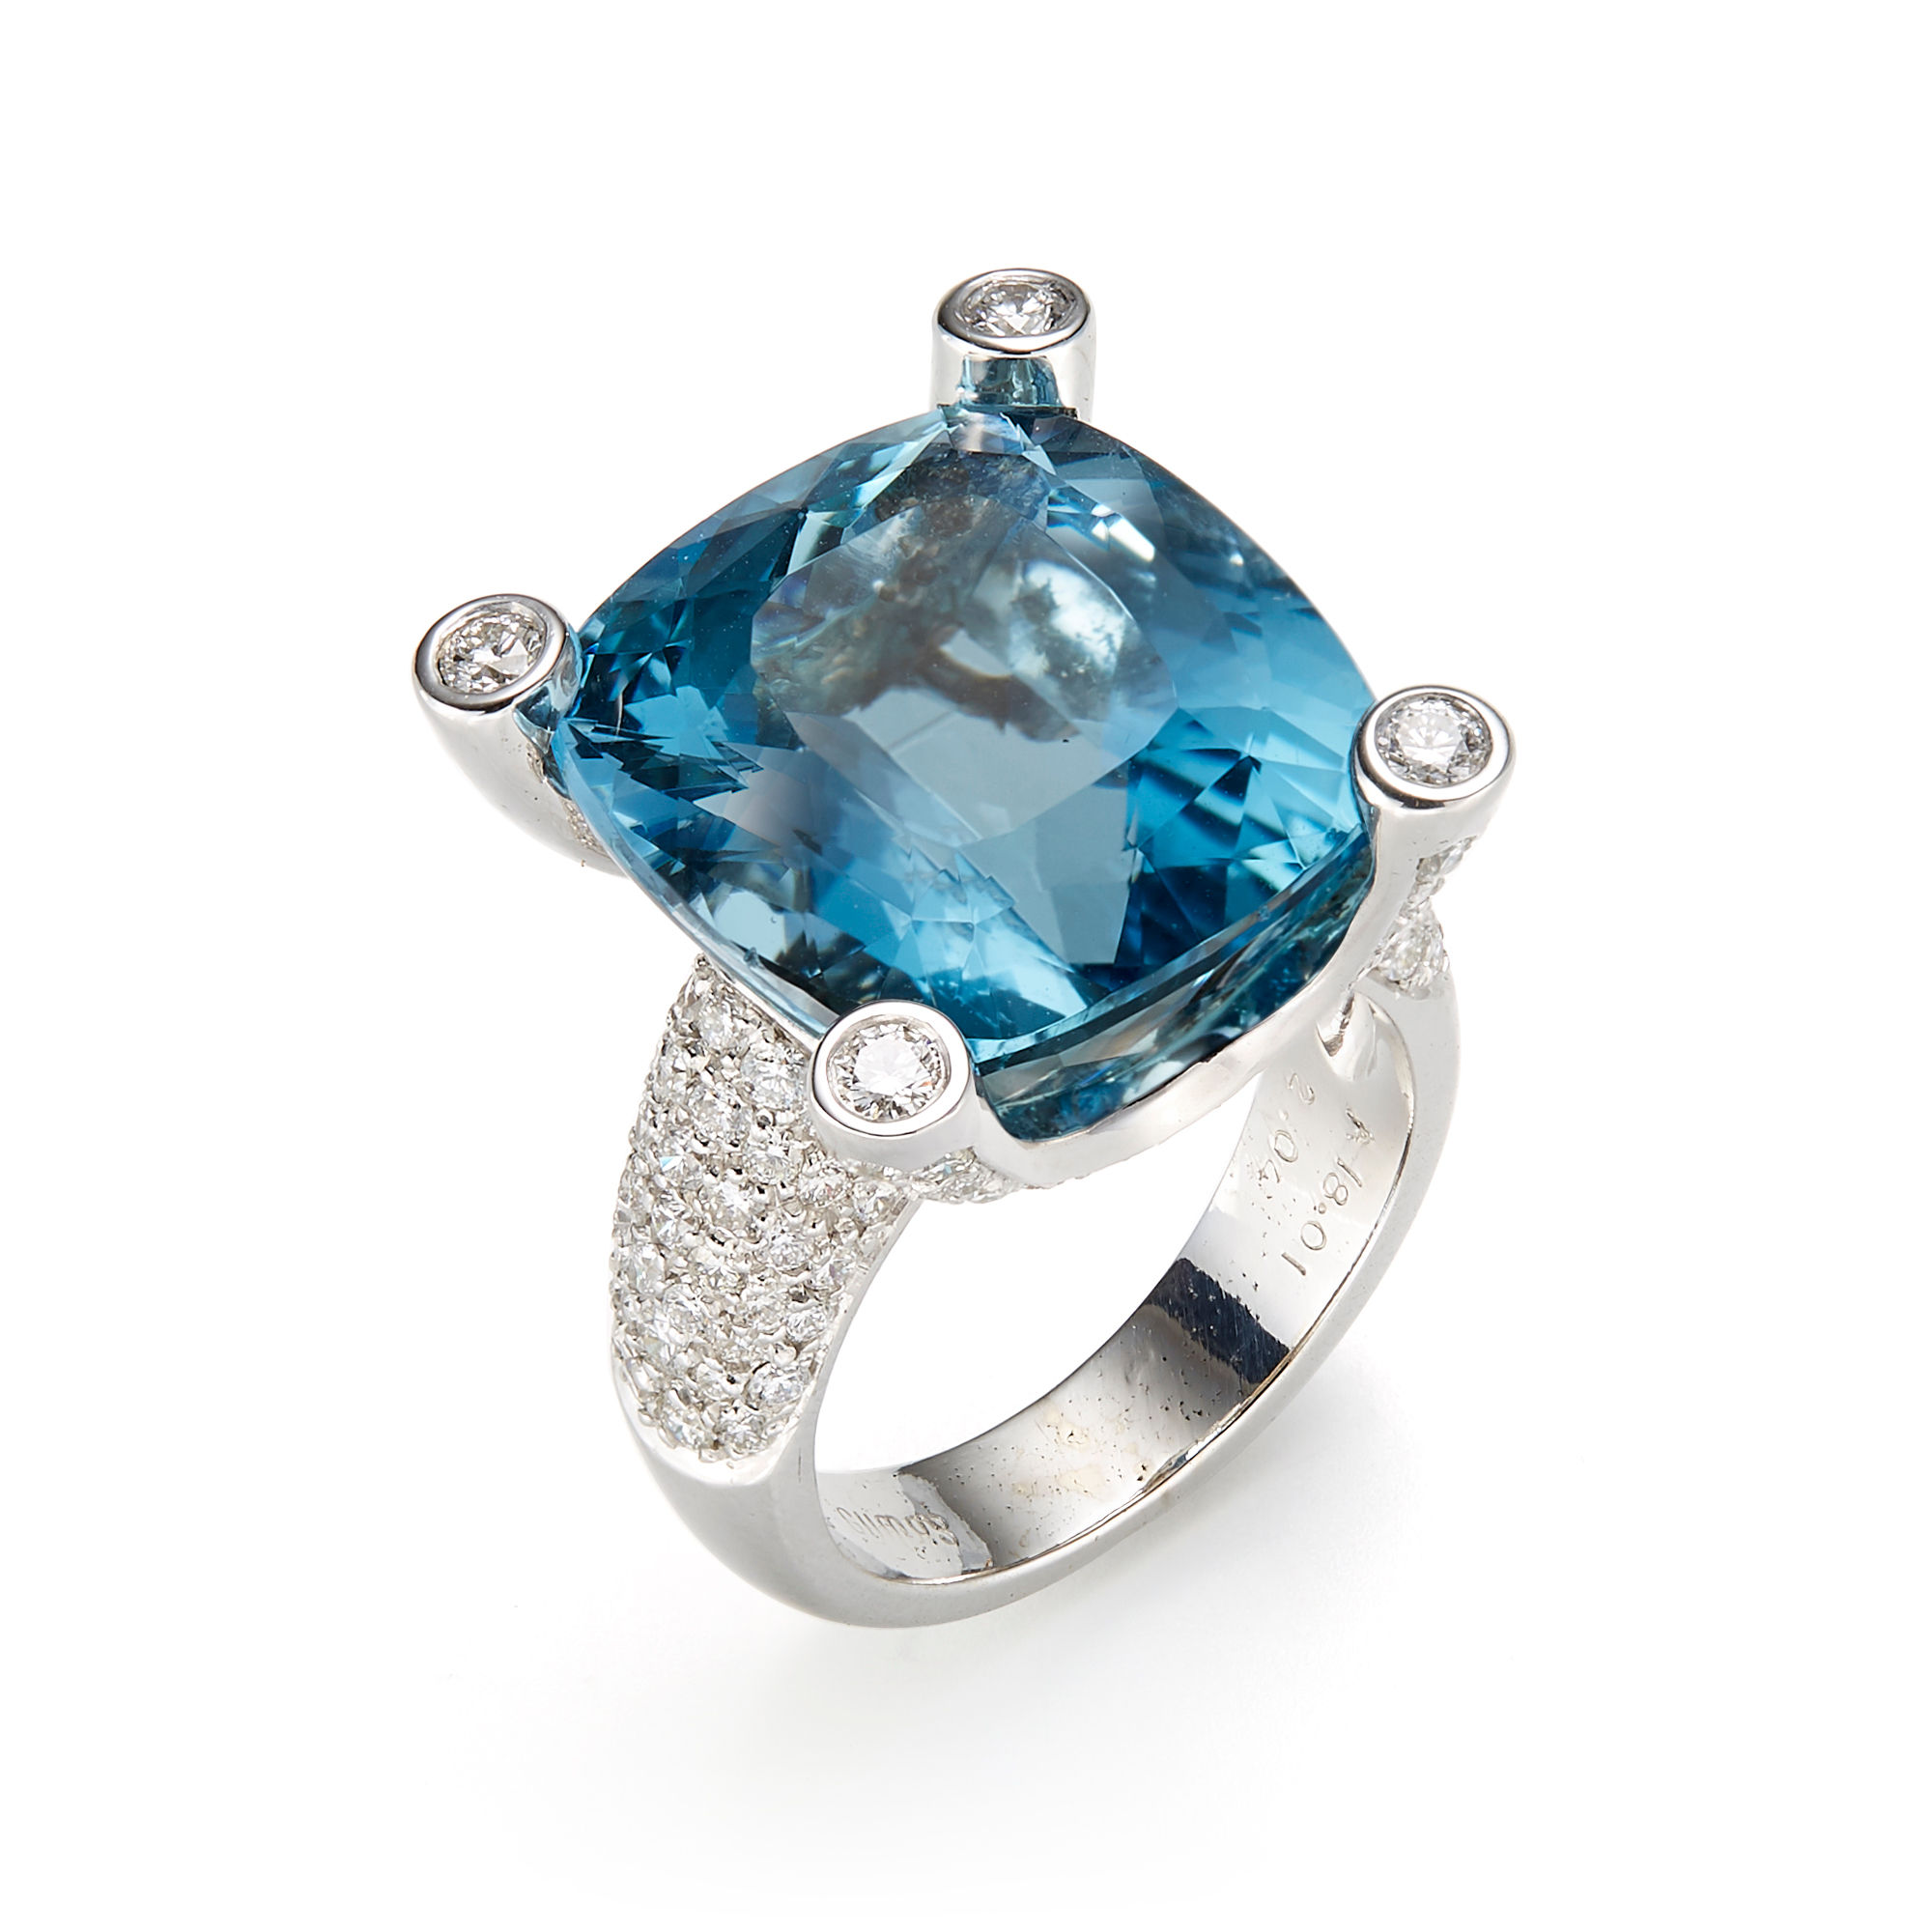 Gump's Faceted Aquamarine & Pavé Diamond Ring